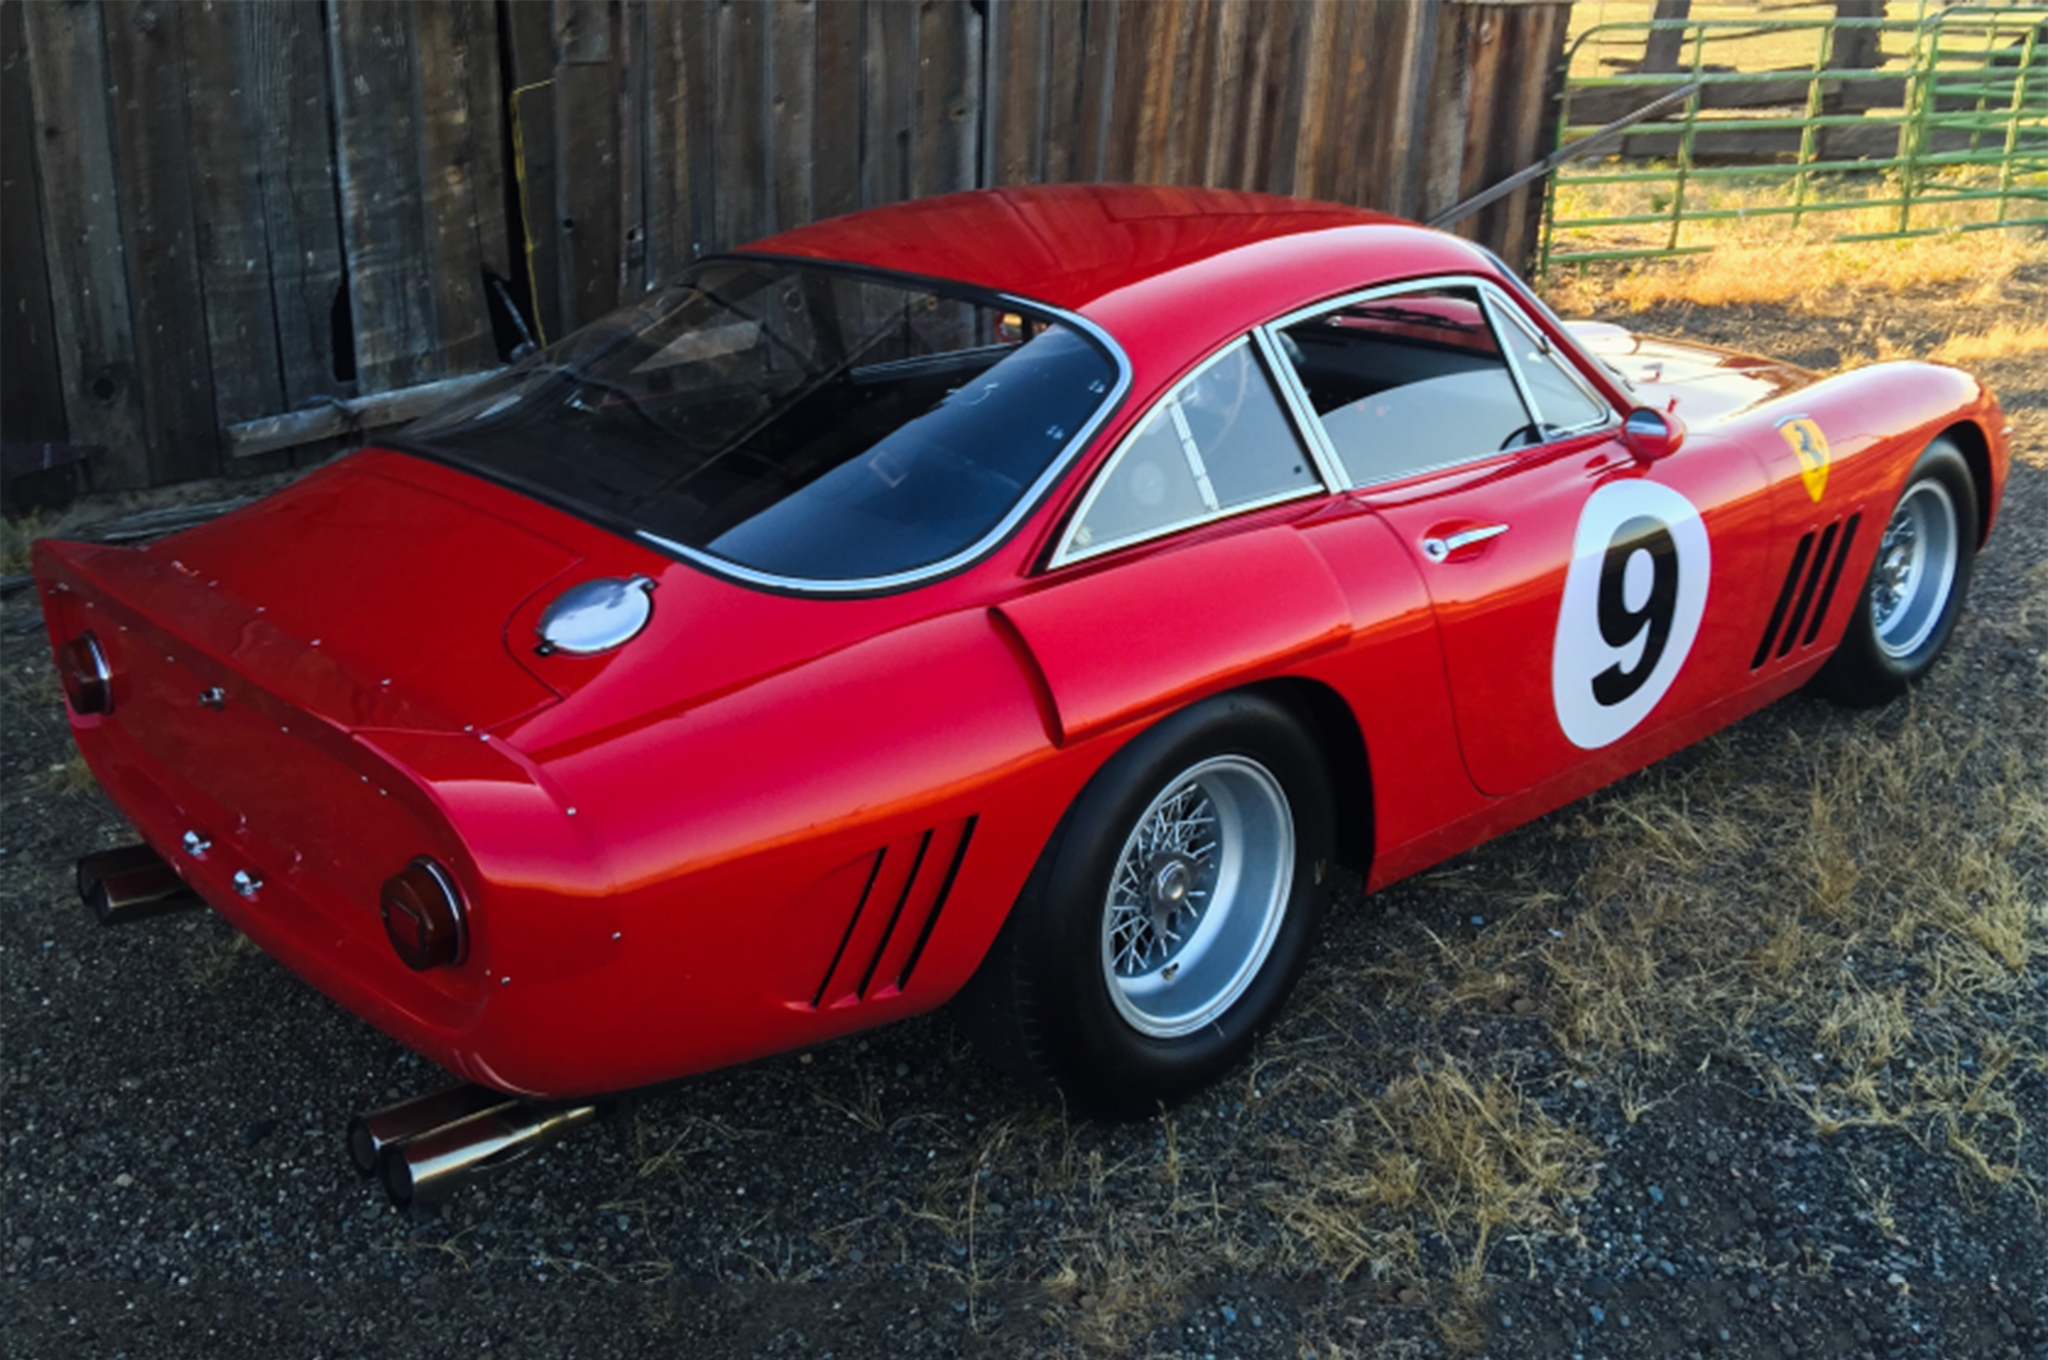 Hyper Rare 1963 Ferrari 330 Lmb Up For Sale At Monterey